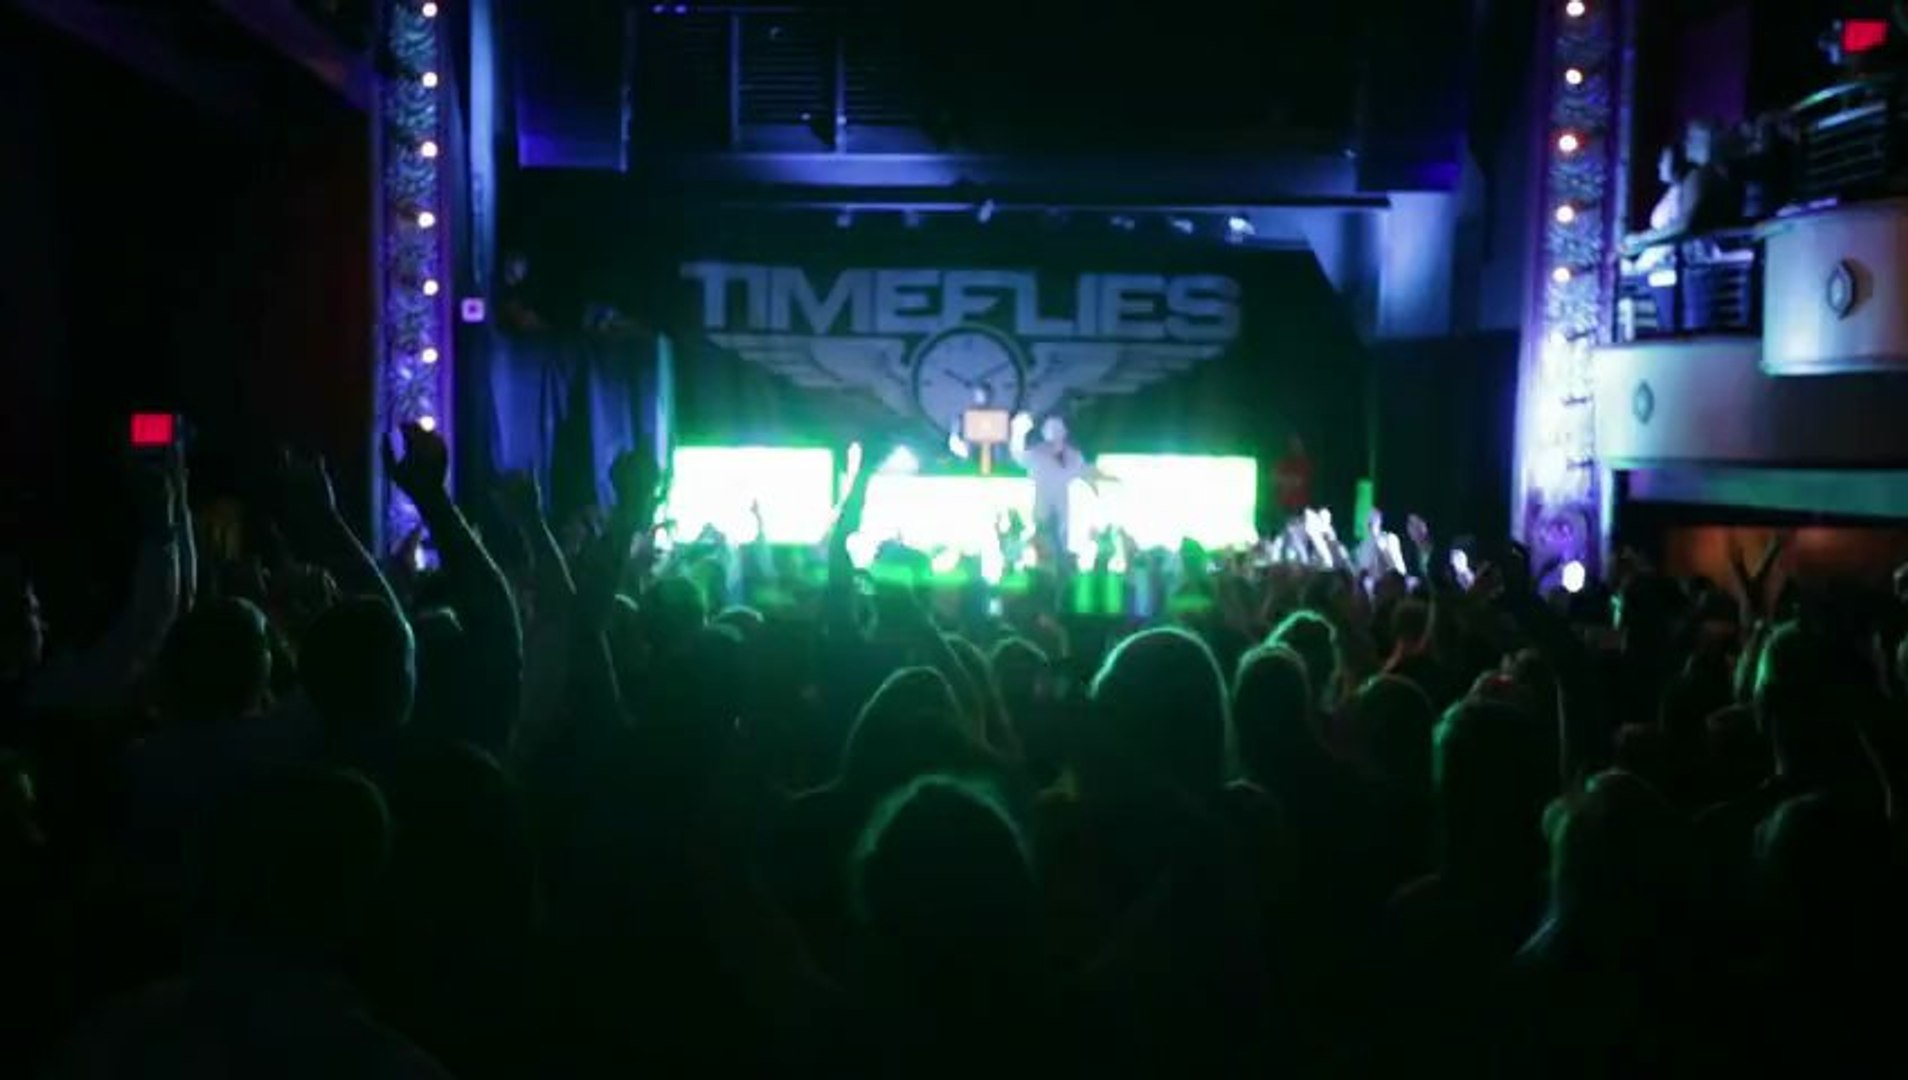 Timeflies Tuesday - We Found Love HD